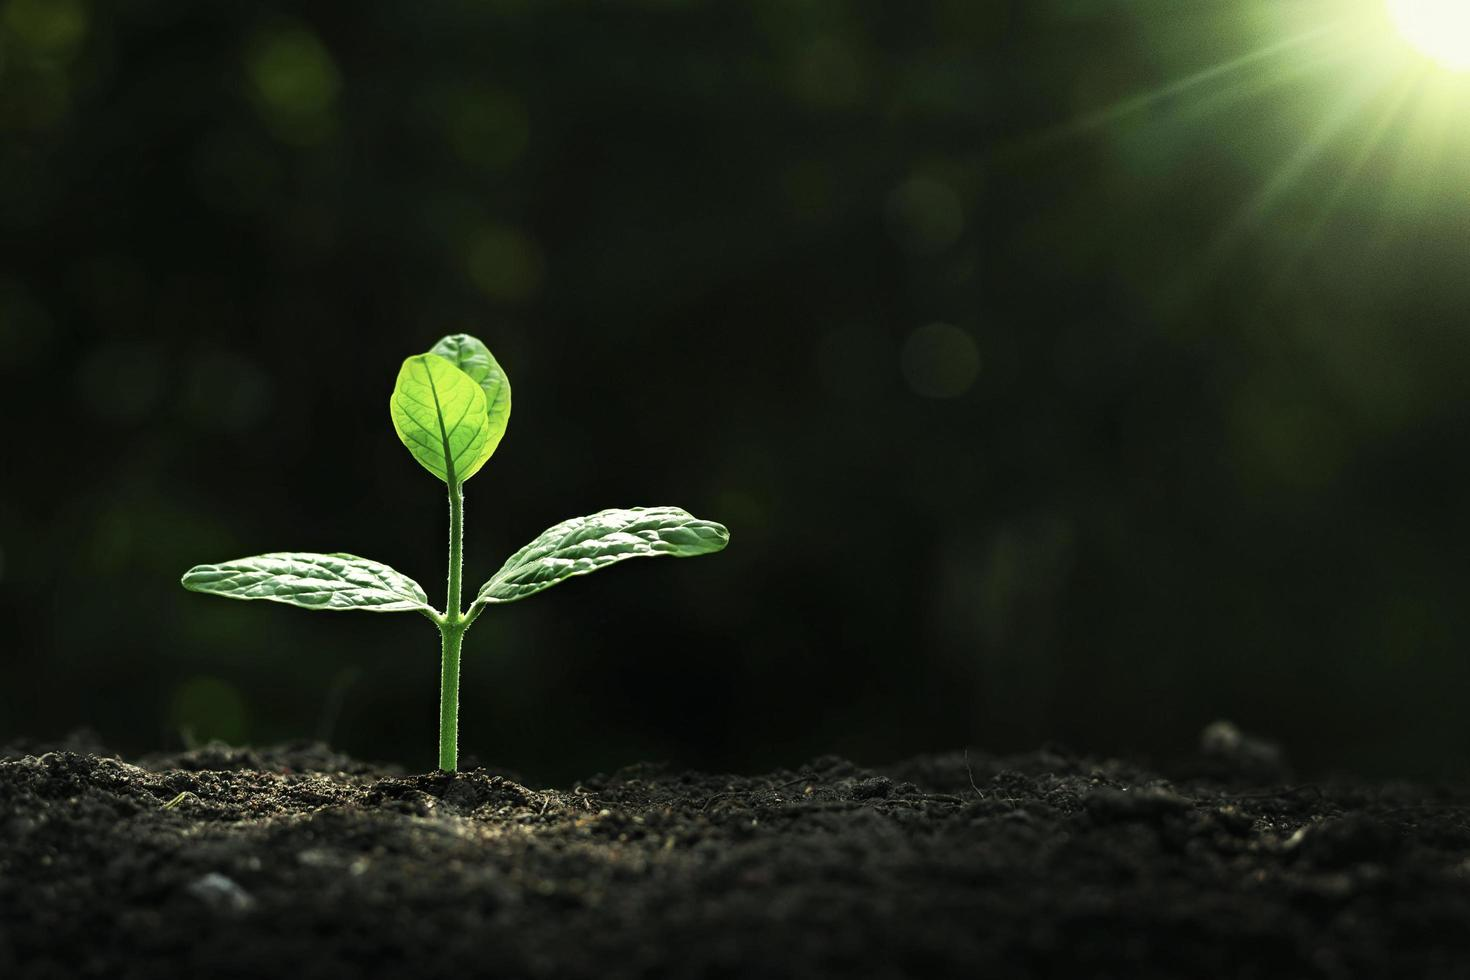 Plant growth on the soil photo